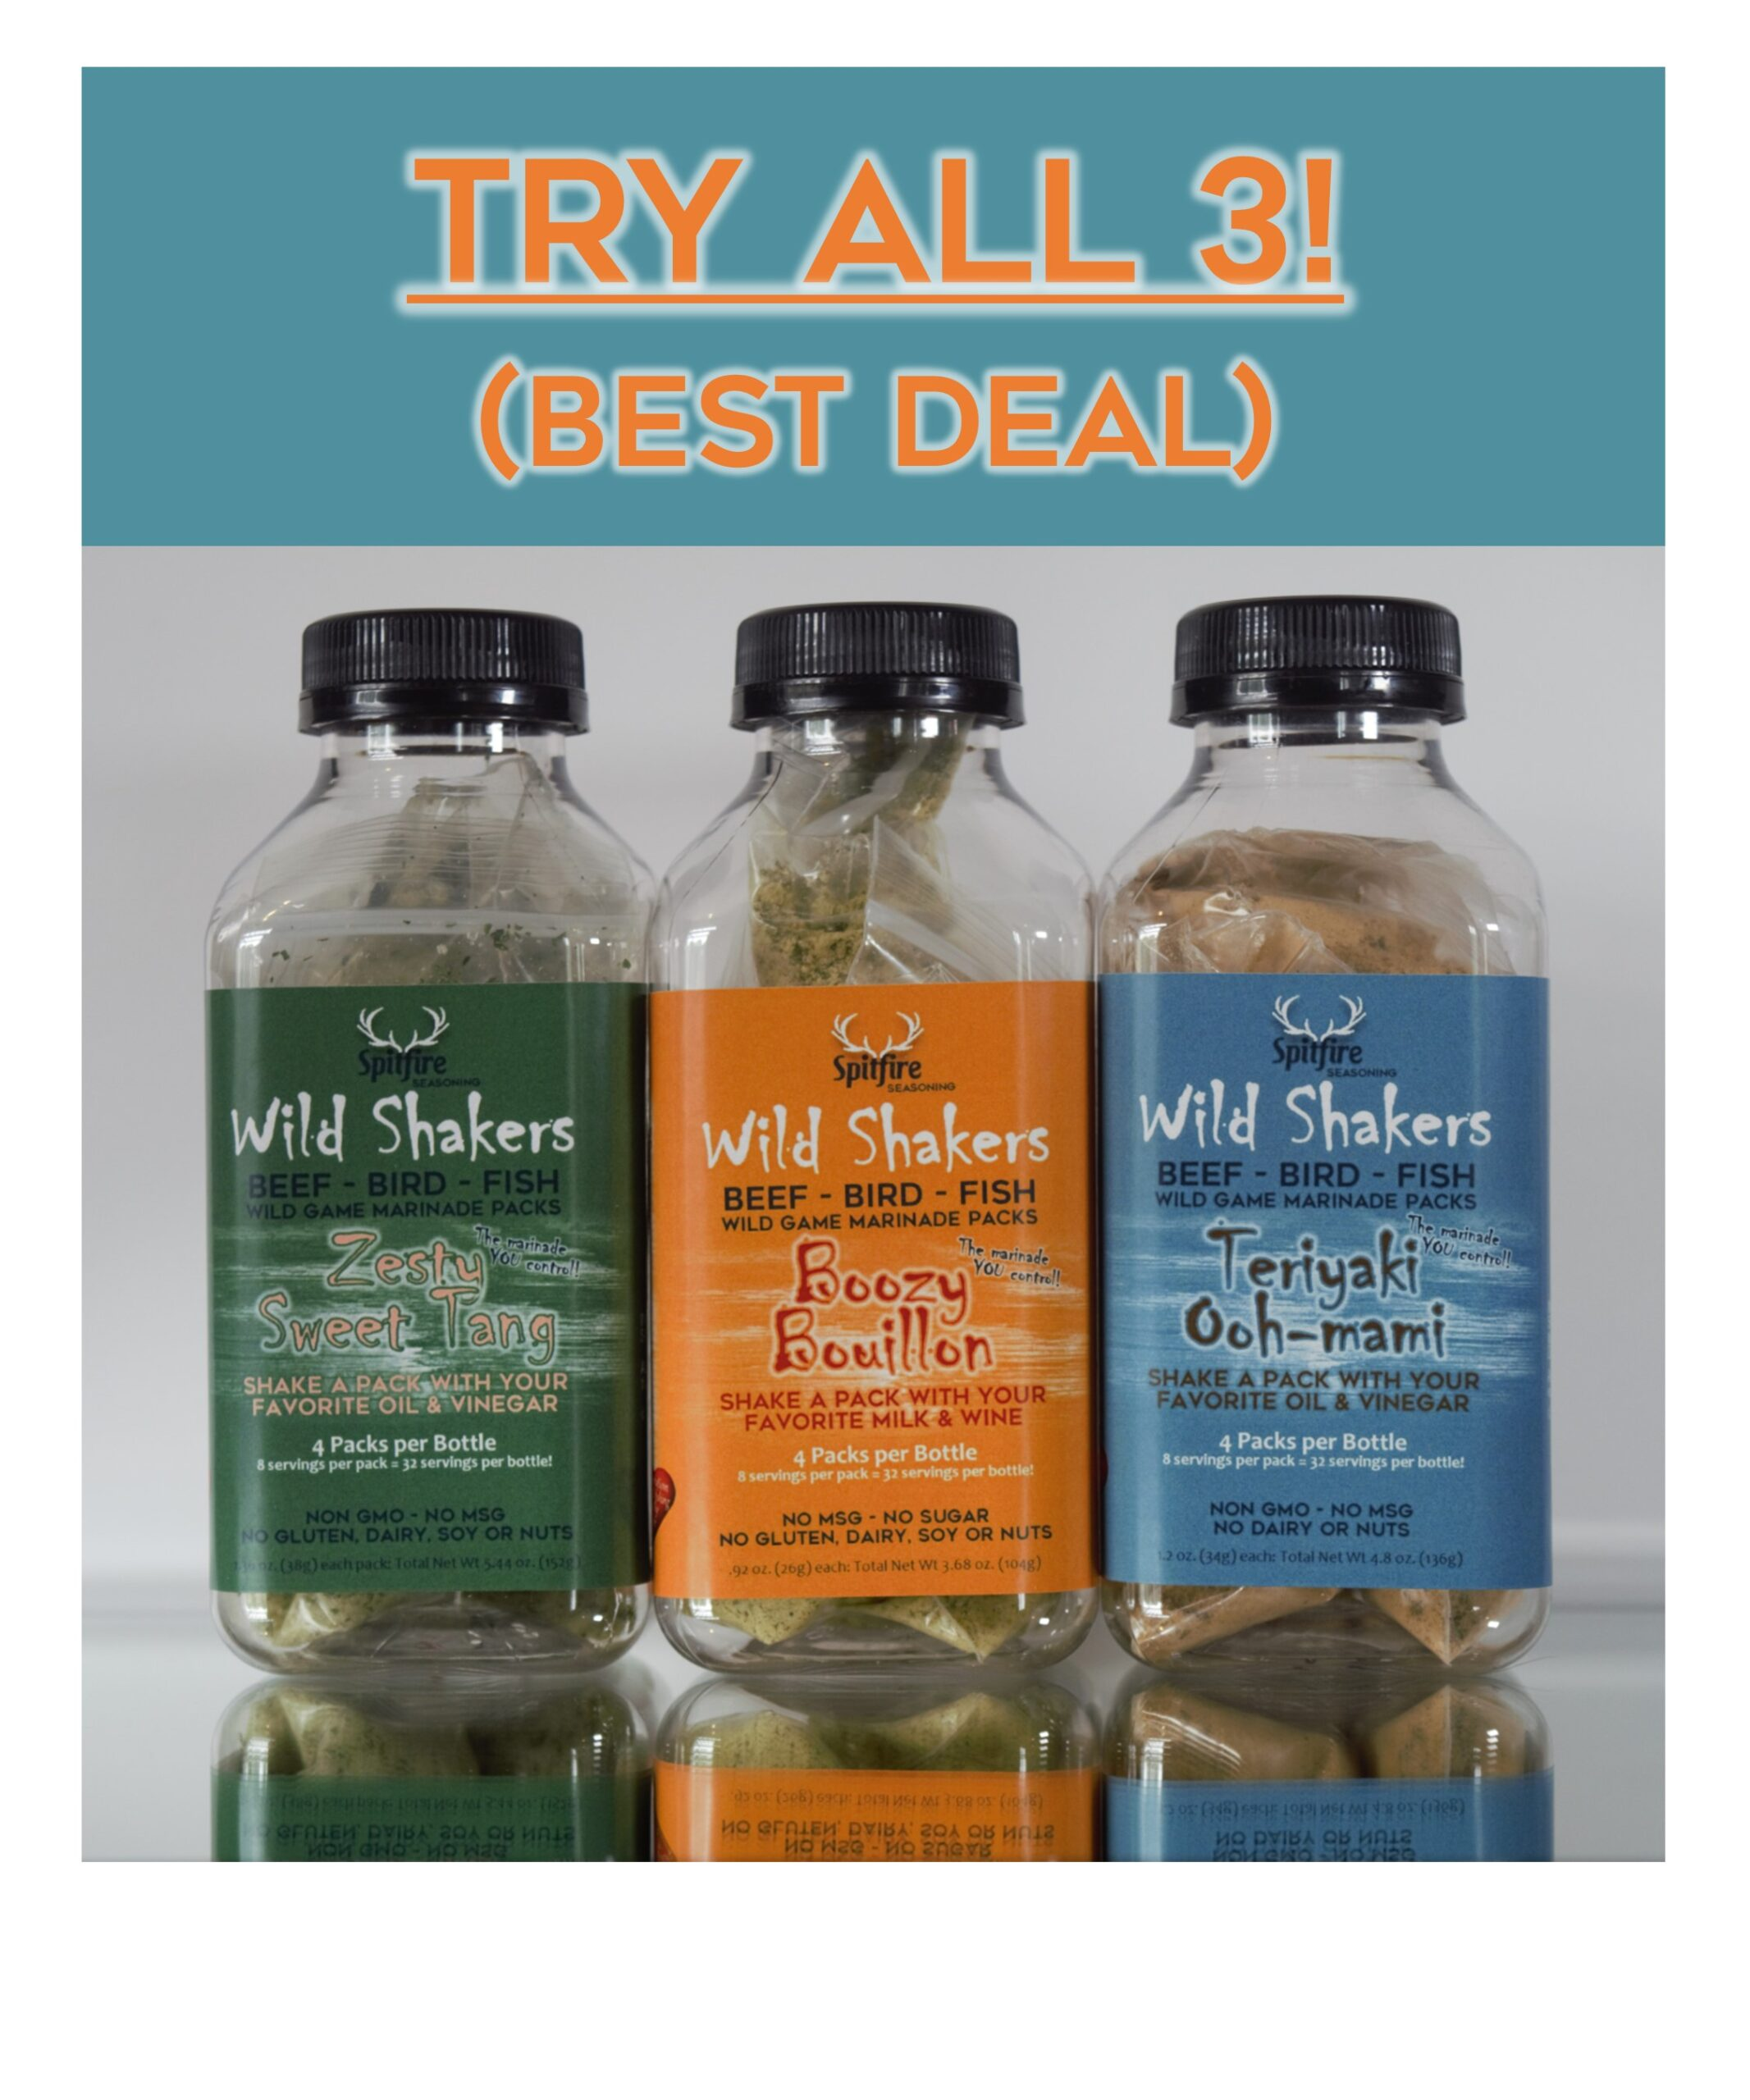 Buy all 3 bottles. Easy marinade packs for game birds and fish.